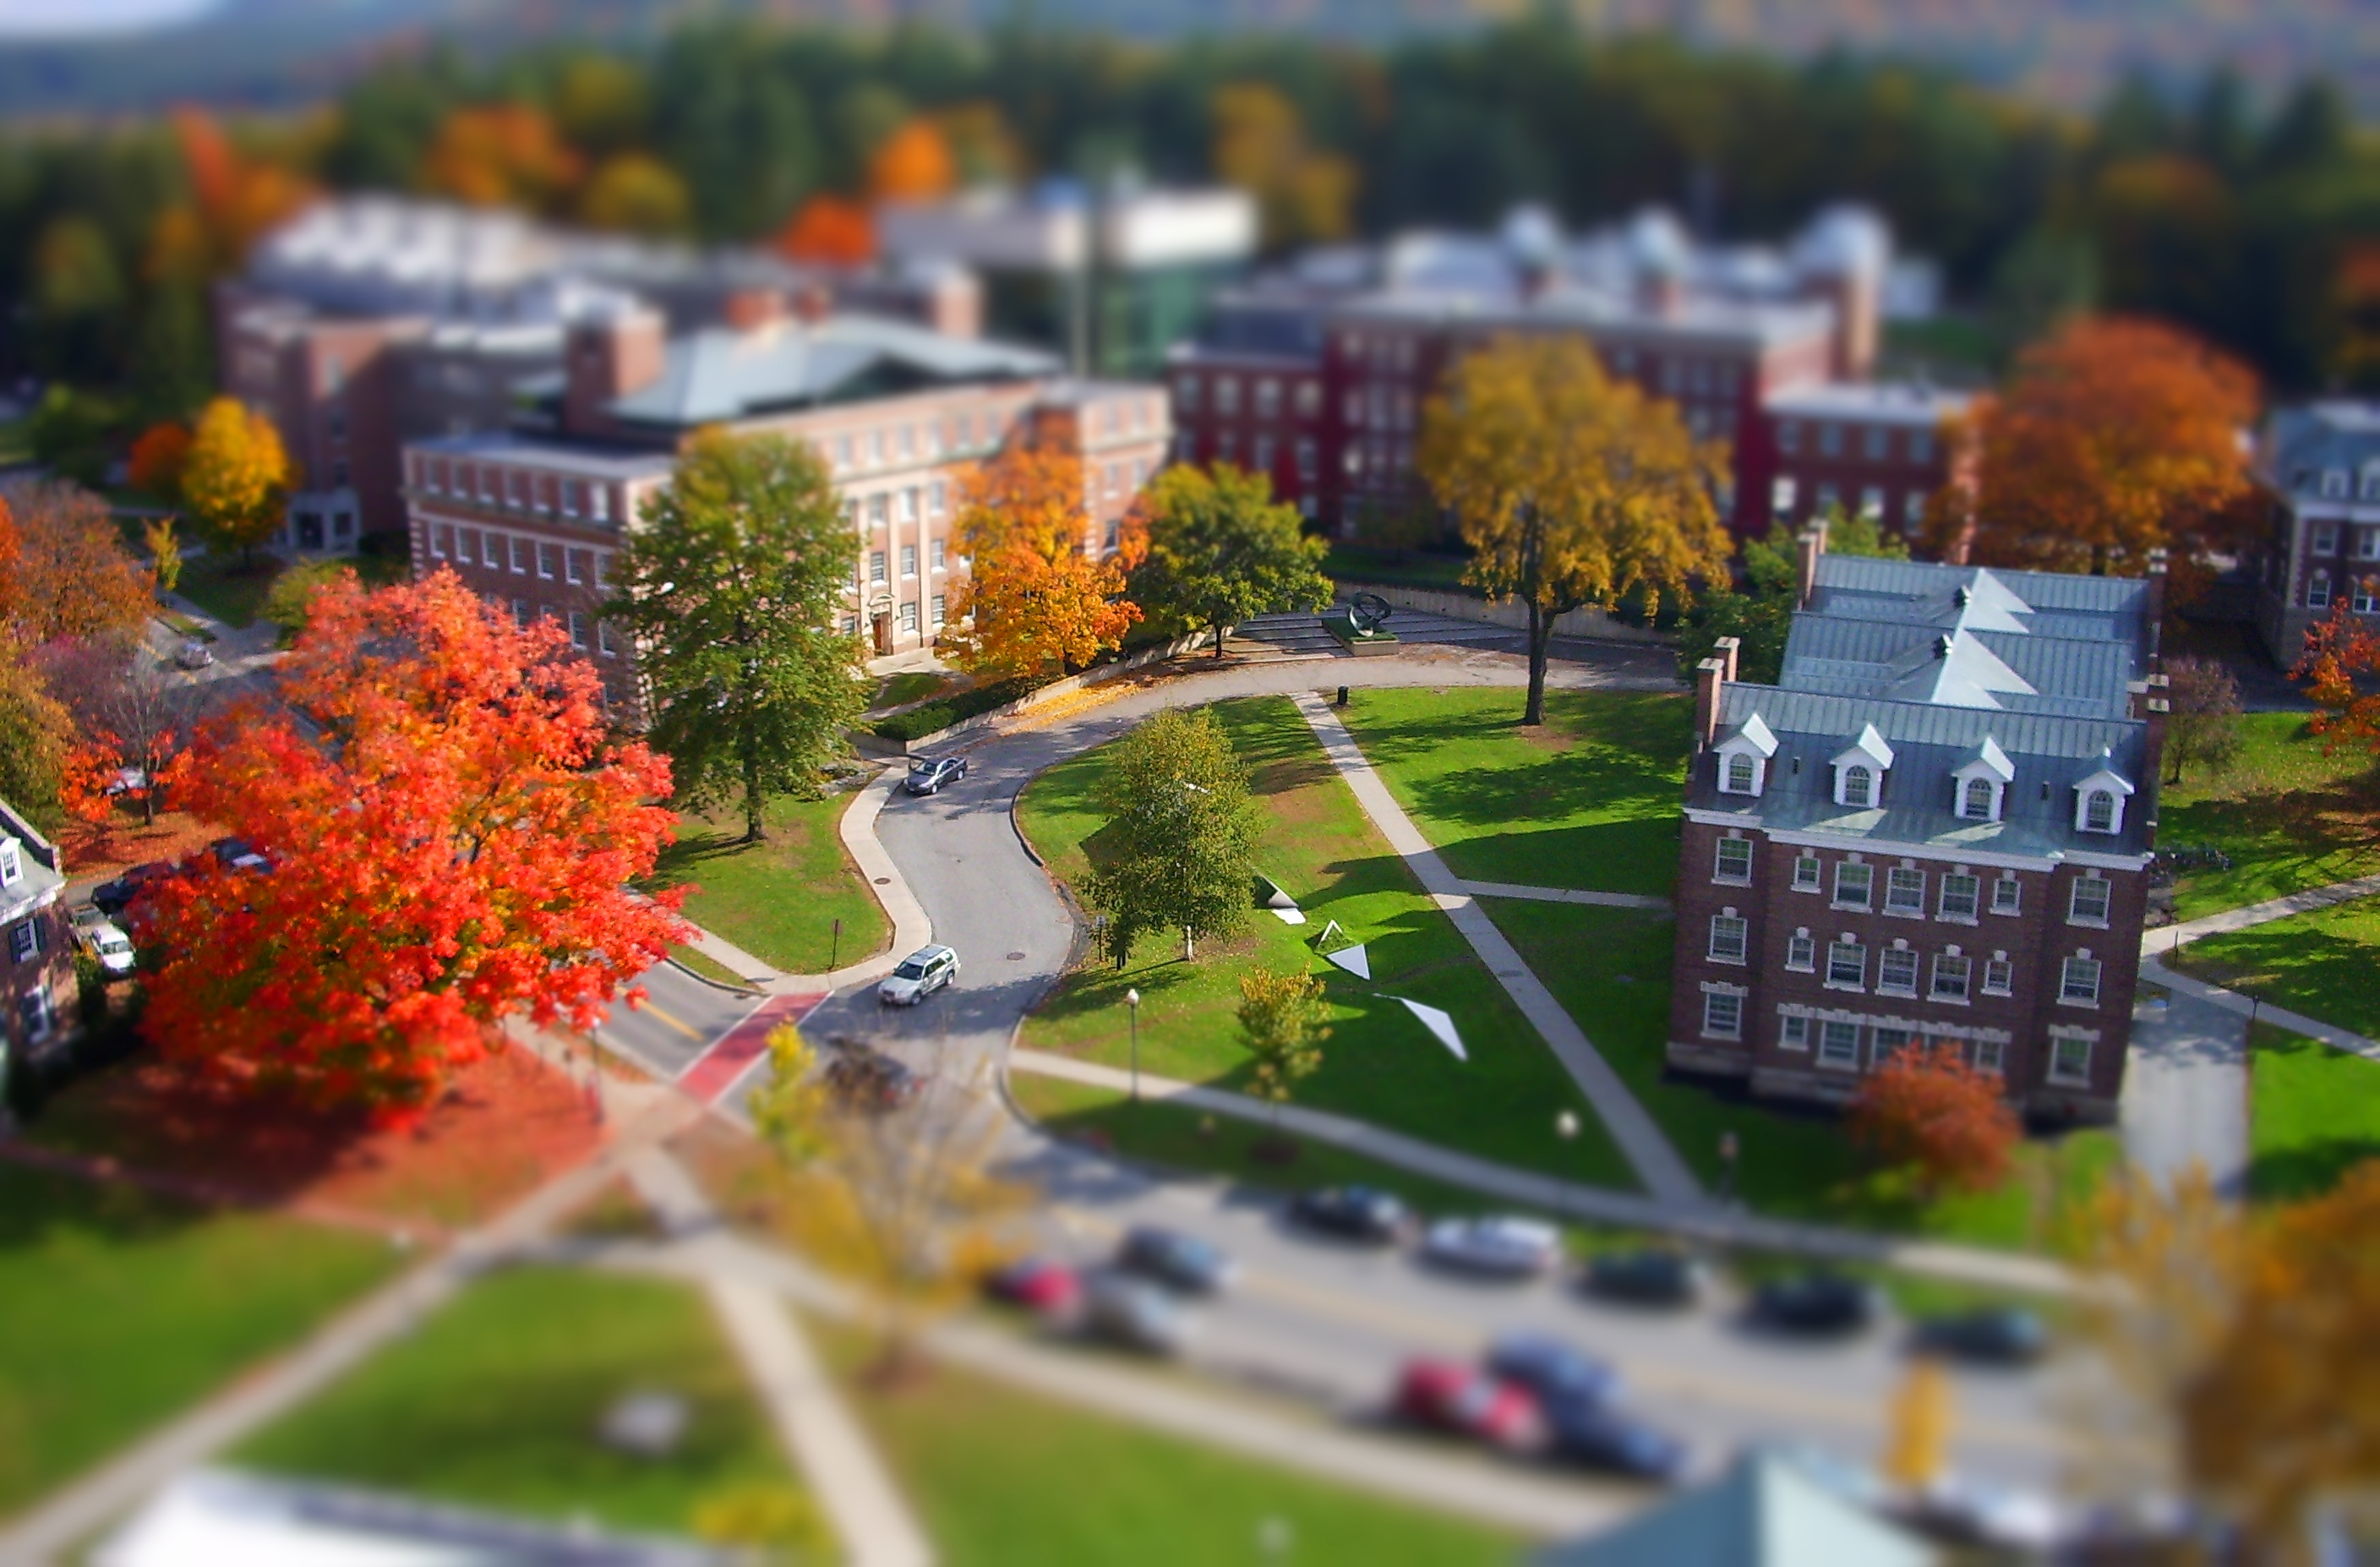 campus life - tilt shift